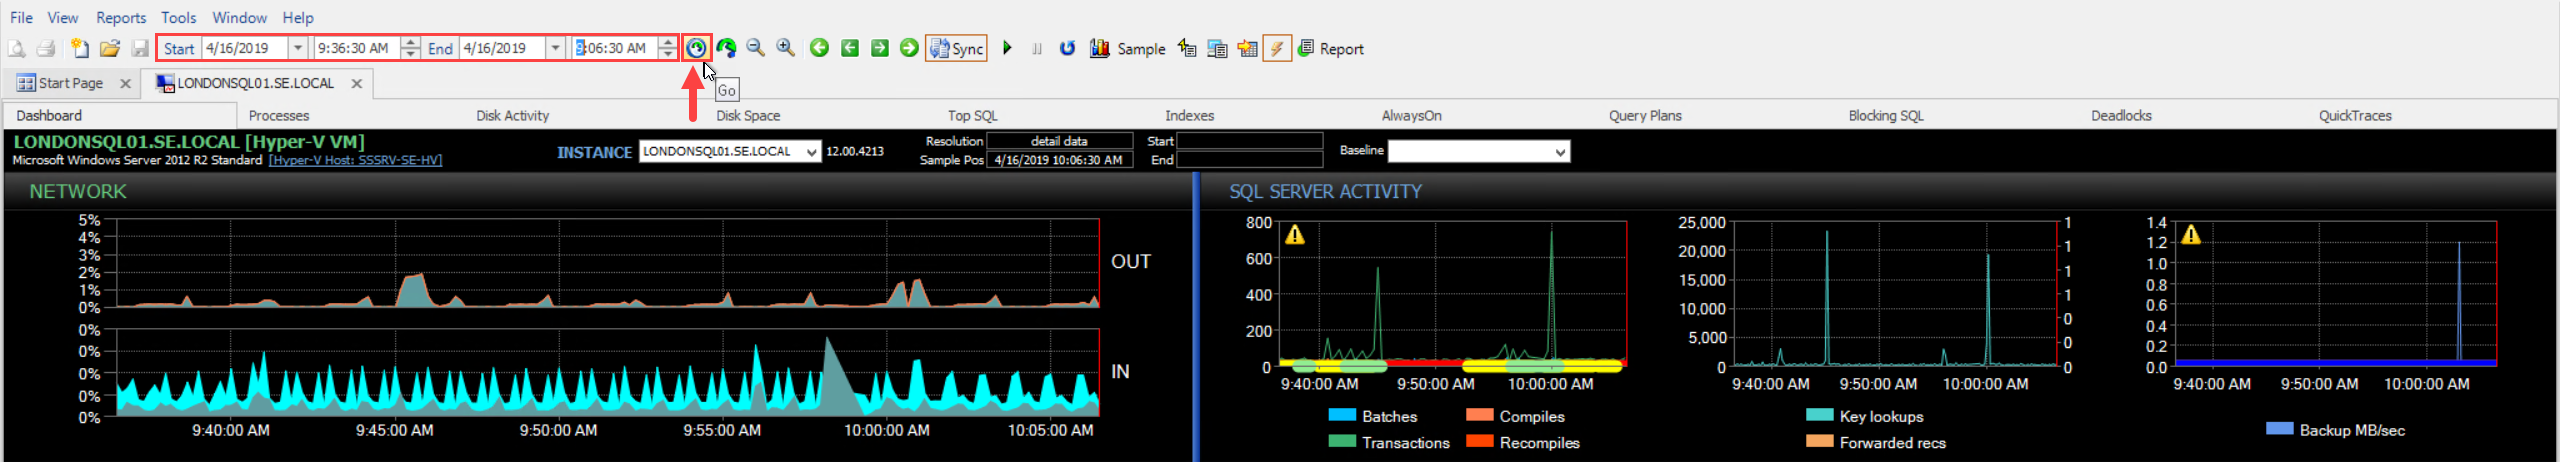 SentryOne Performance Analysis Dashboard History mode time toolbar